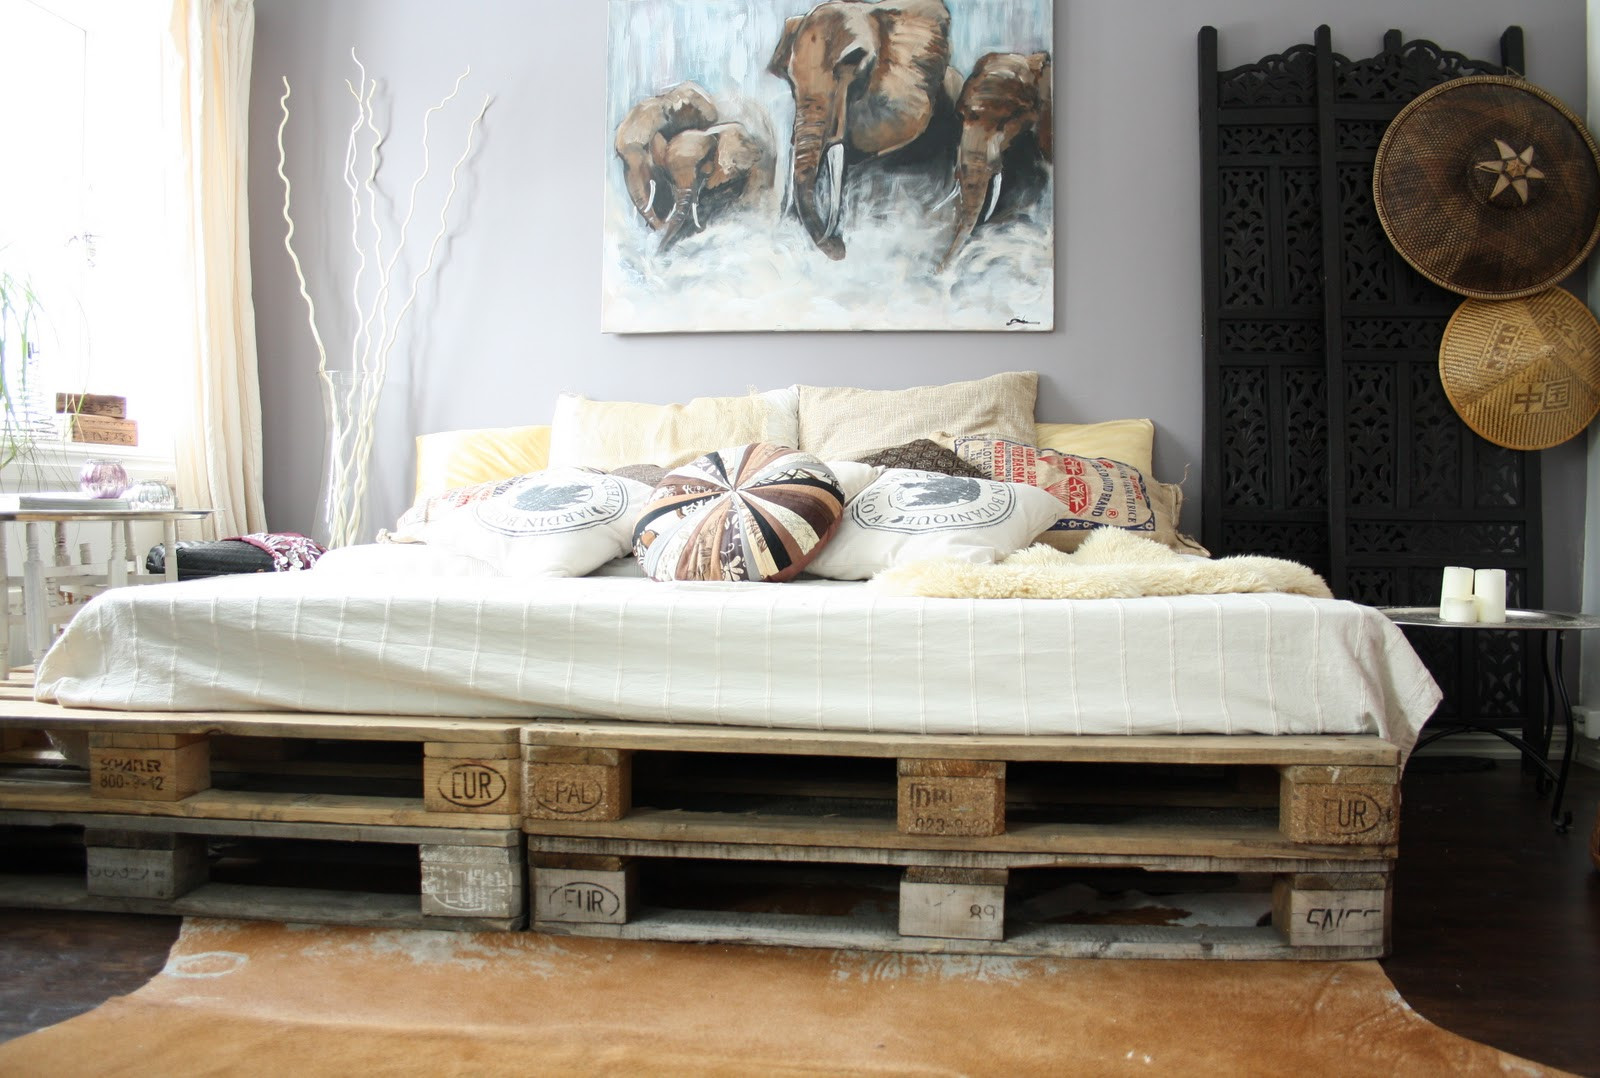 Best ideas about DIY Bed Ideas . Save or Pin 20 brilliant wooden pallet bed frame ideas for your house Now.